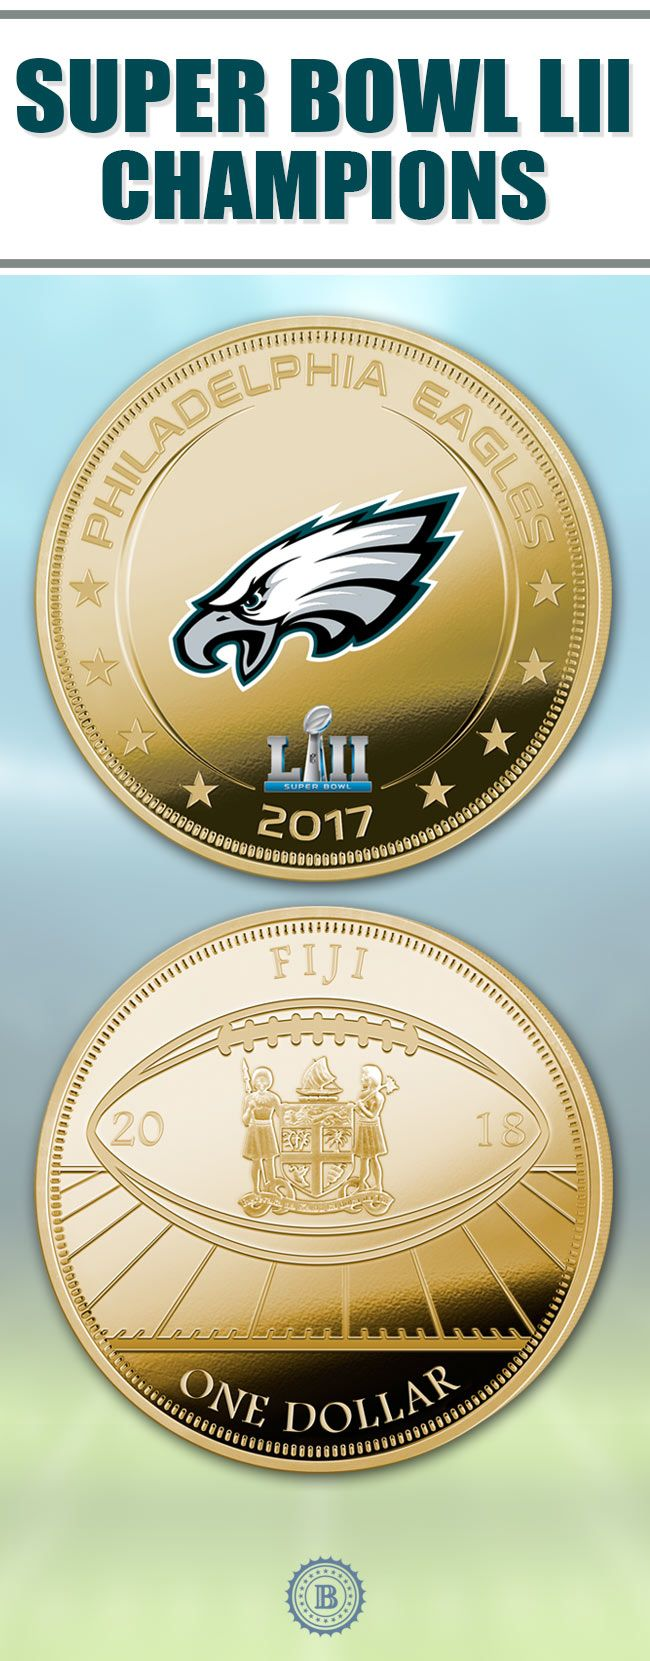 Celebrate the Philadelphia Eagles very first Super Bowl win with this commemorative dollar coin collection. Each proof-condition treasure is richly plated in 24K gold and showcases stunning player artwork.